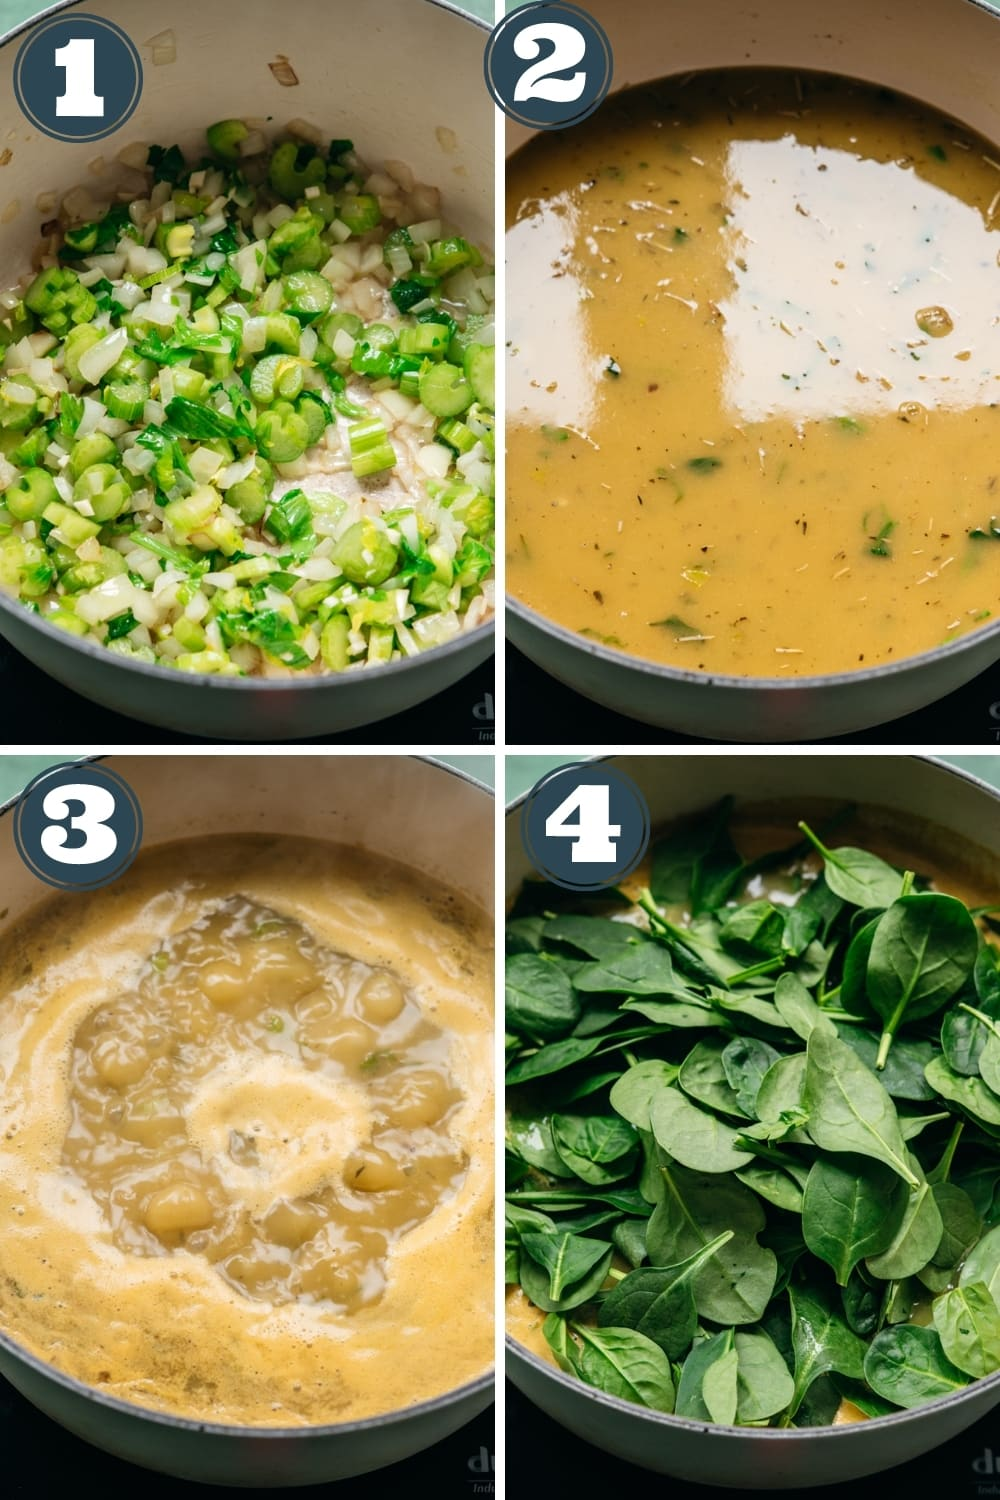 step-by-step instructions for how to make white bean spinach soup.